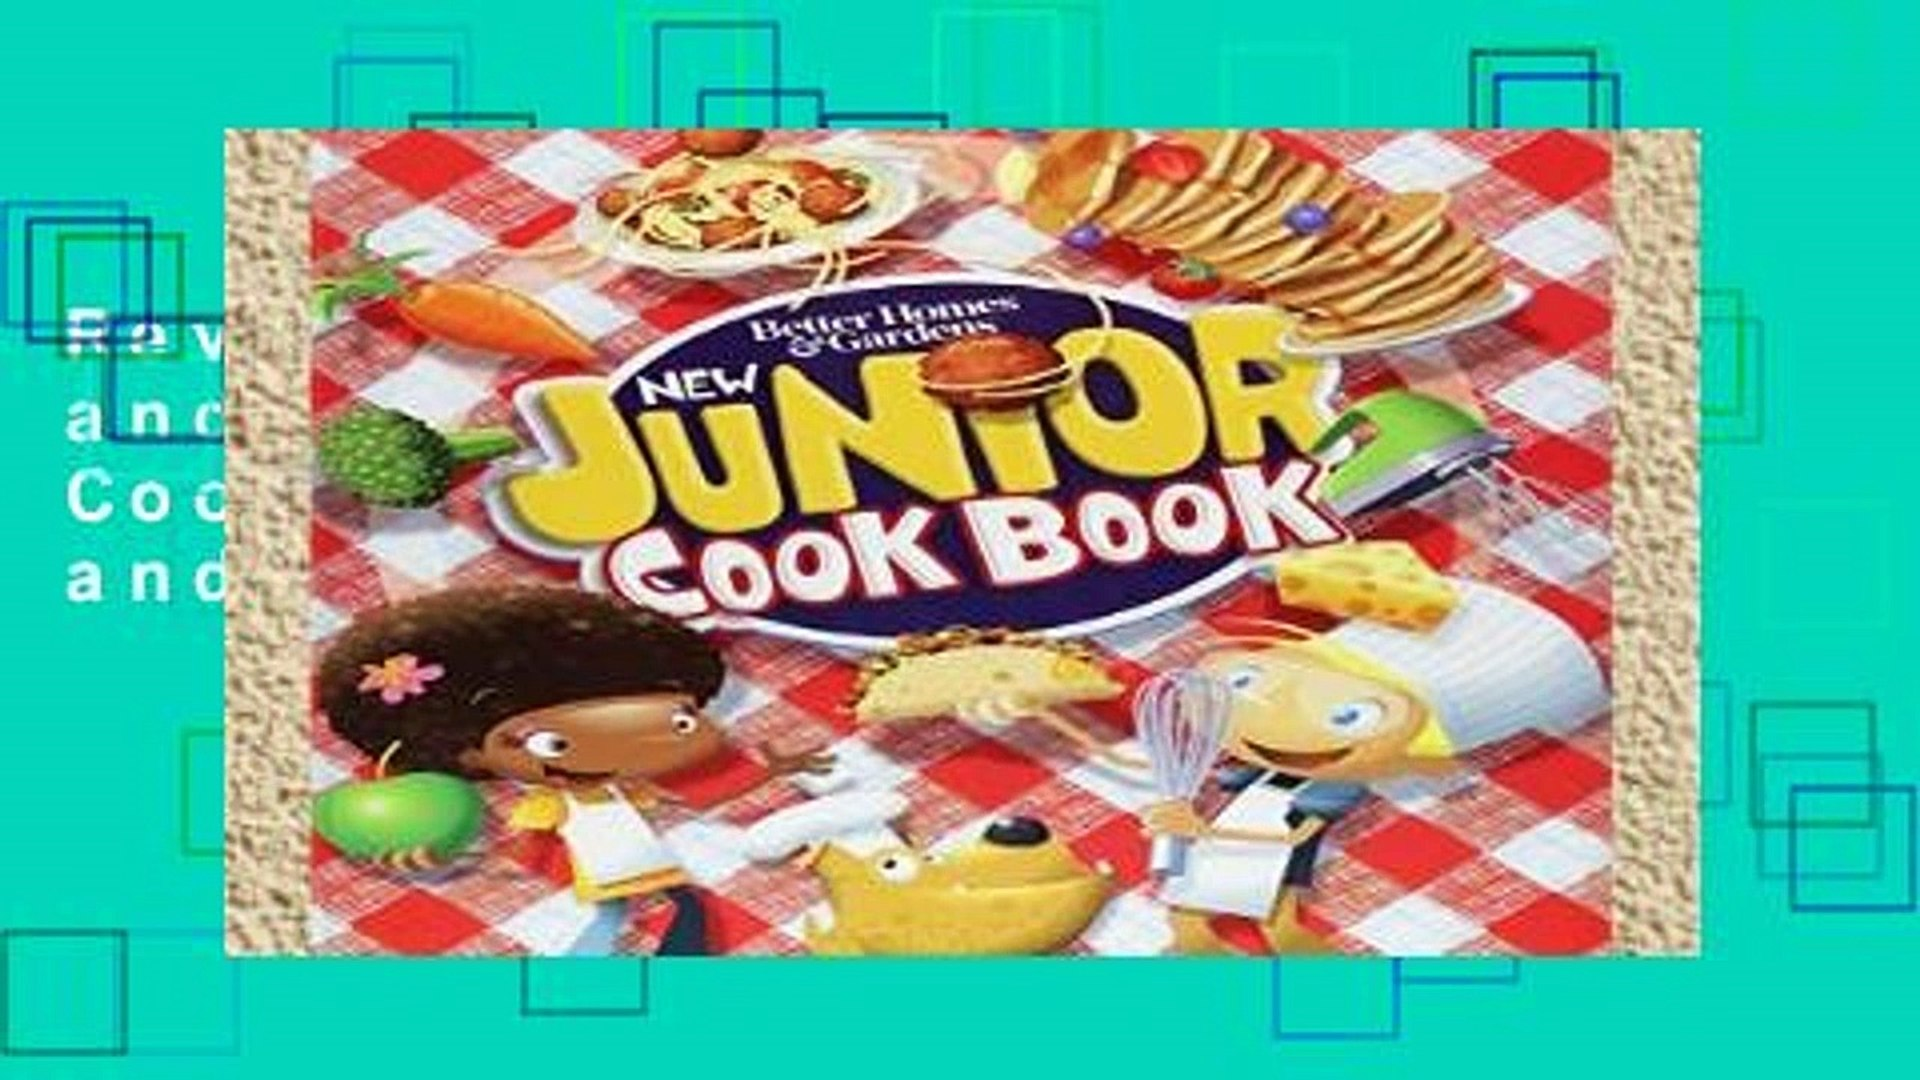 Review  Better Homes and Gardens New Junior Cook Book (Better Homes and Gardens Cooking)